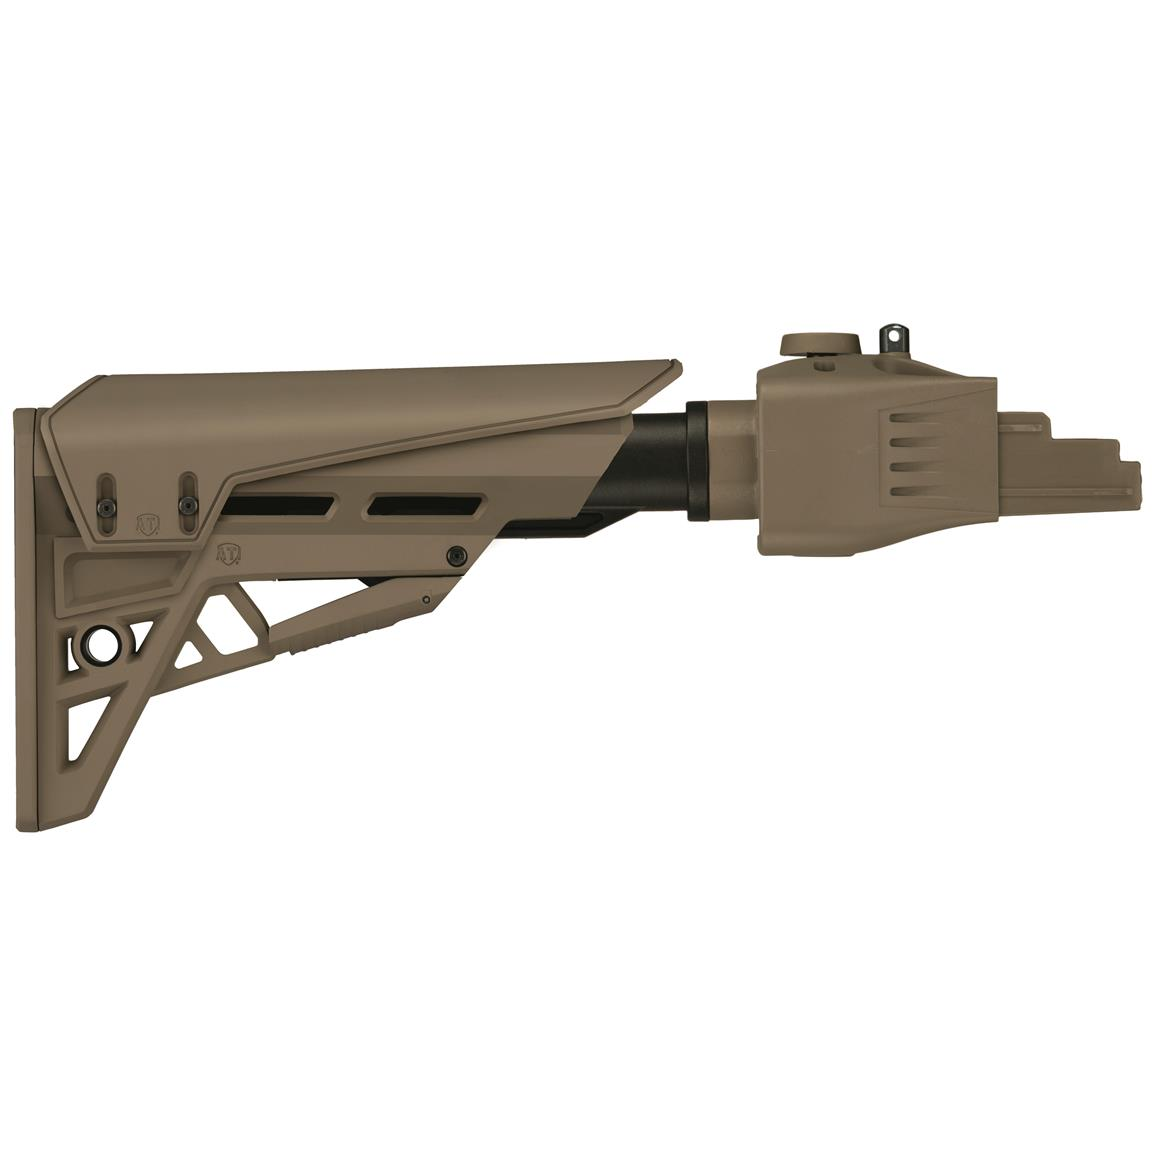 ATI TactLite StrikeForce R22 Folding Rifle Stock For Ruger 10/22 Rifles, Flat Dark Earth